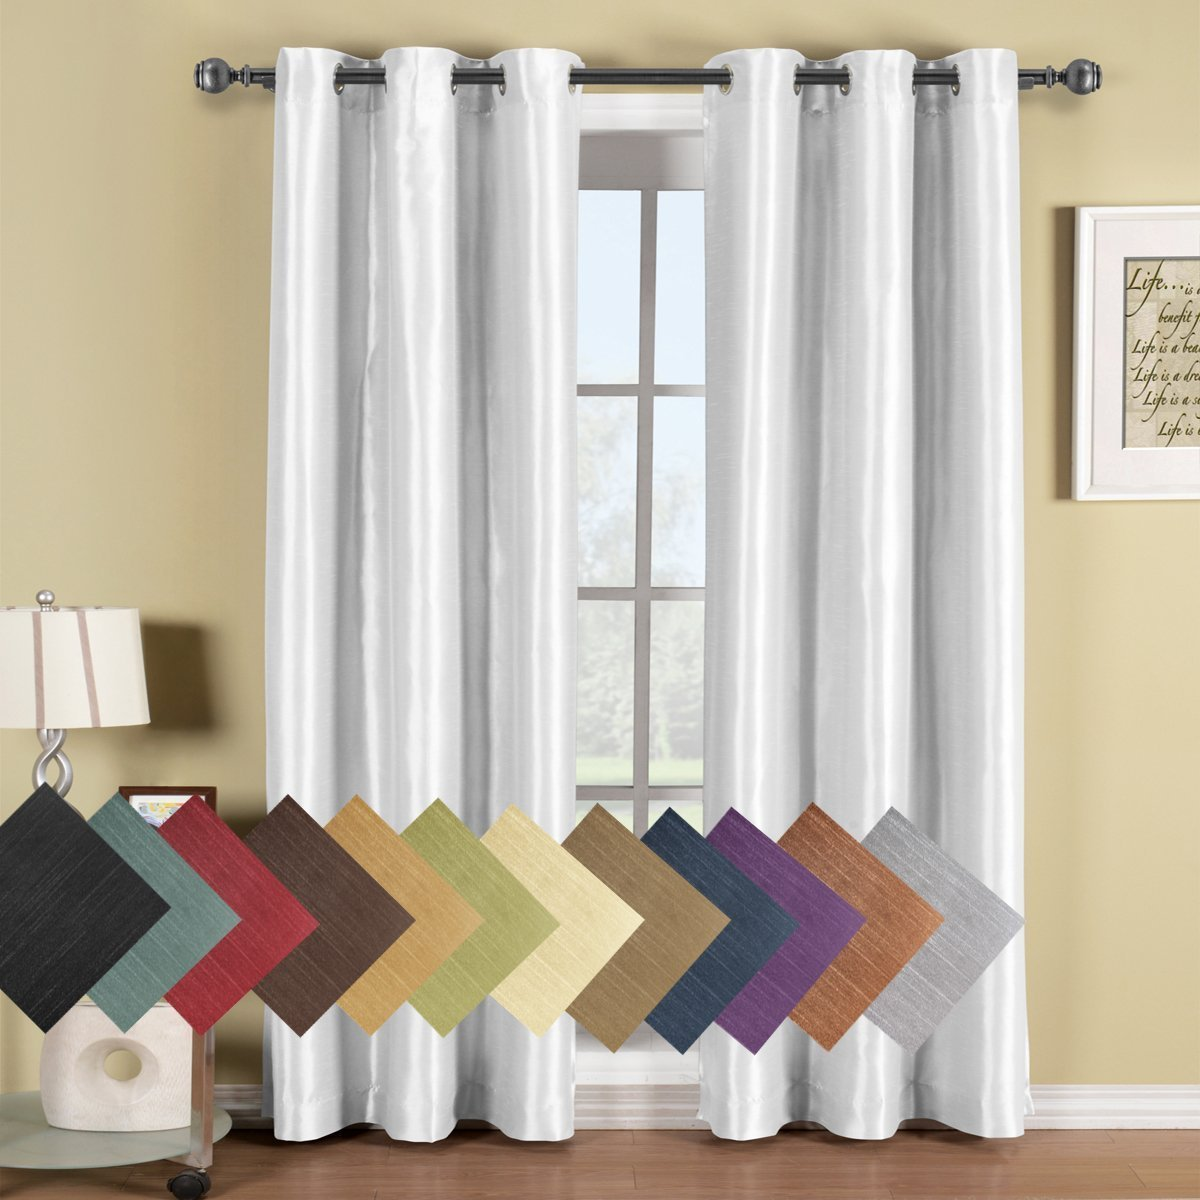 Royal Hotel Soho Top Grommet Blackout Window Curtains - Single Panel